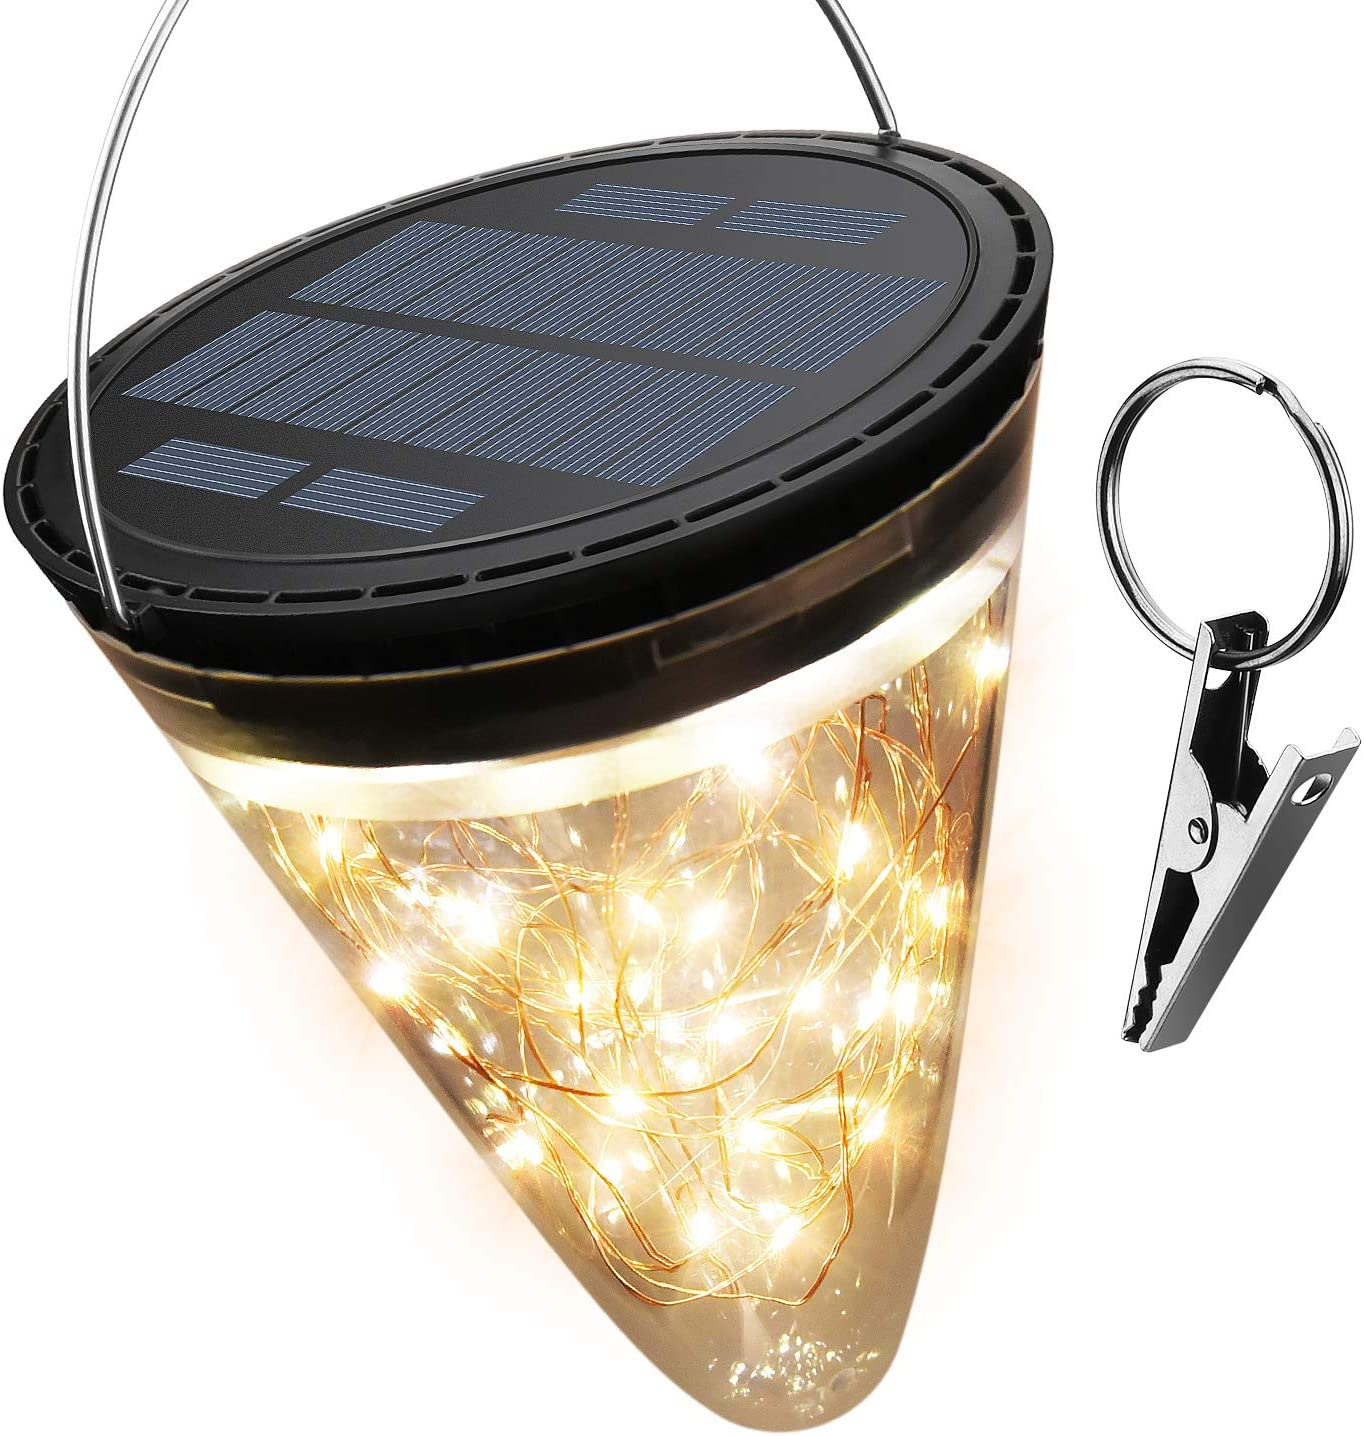 50 LED Solar Lantern Light 2800K Warm JACKYLED 2200mAh Cone Solar Hanging Light Waterproof Tabletop Lamp with 3 Lighting Modes for Garden Patio Pathway Landscape Party Decoration 1-Pack